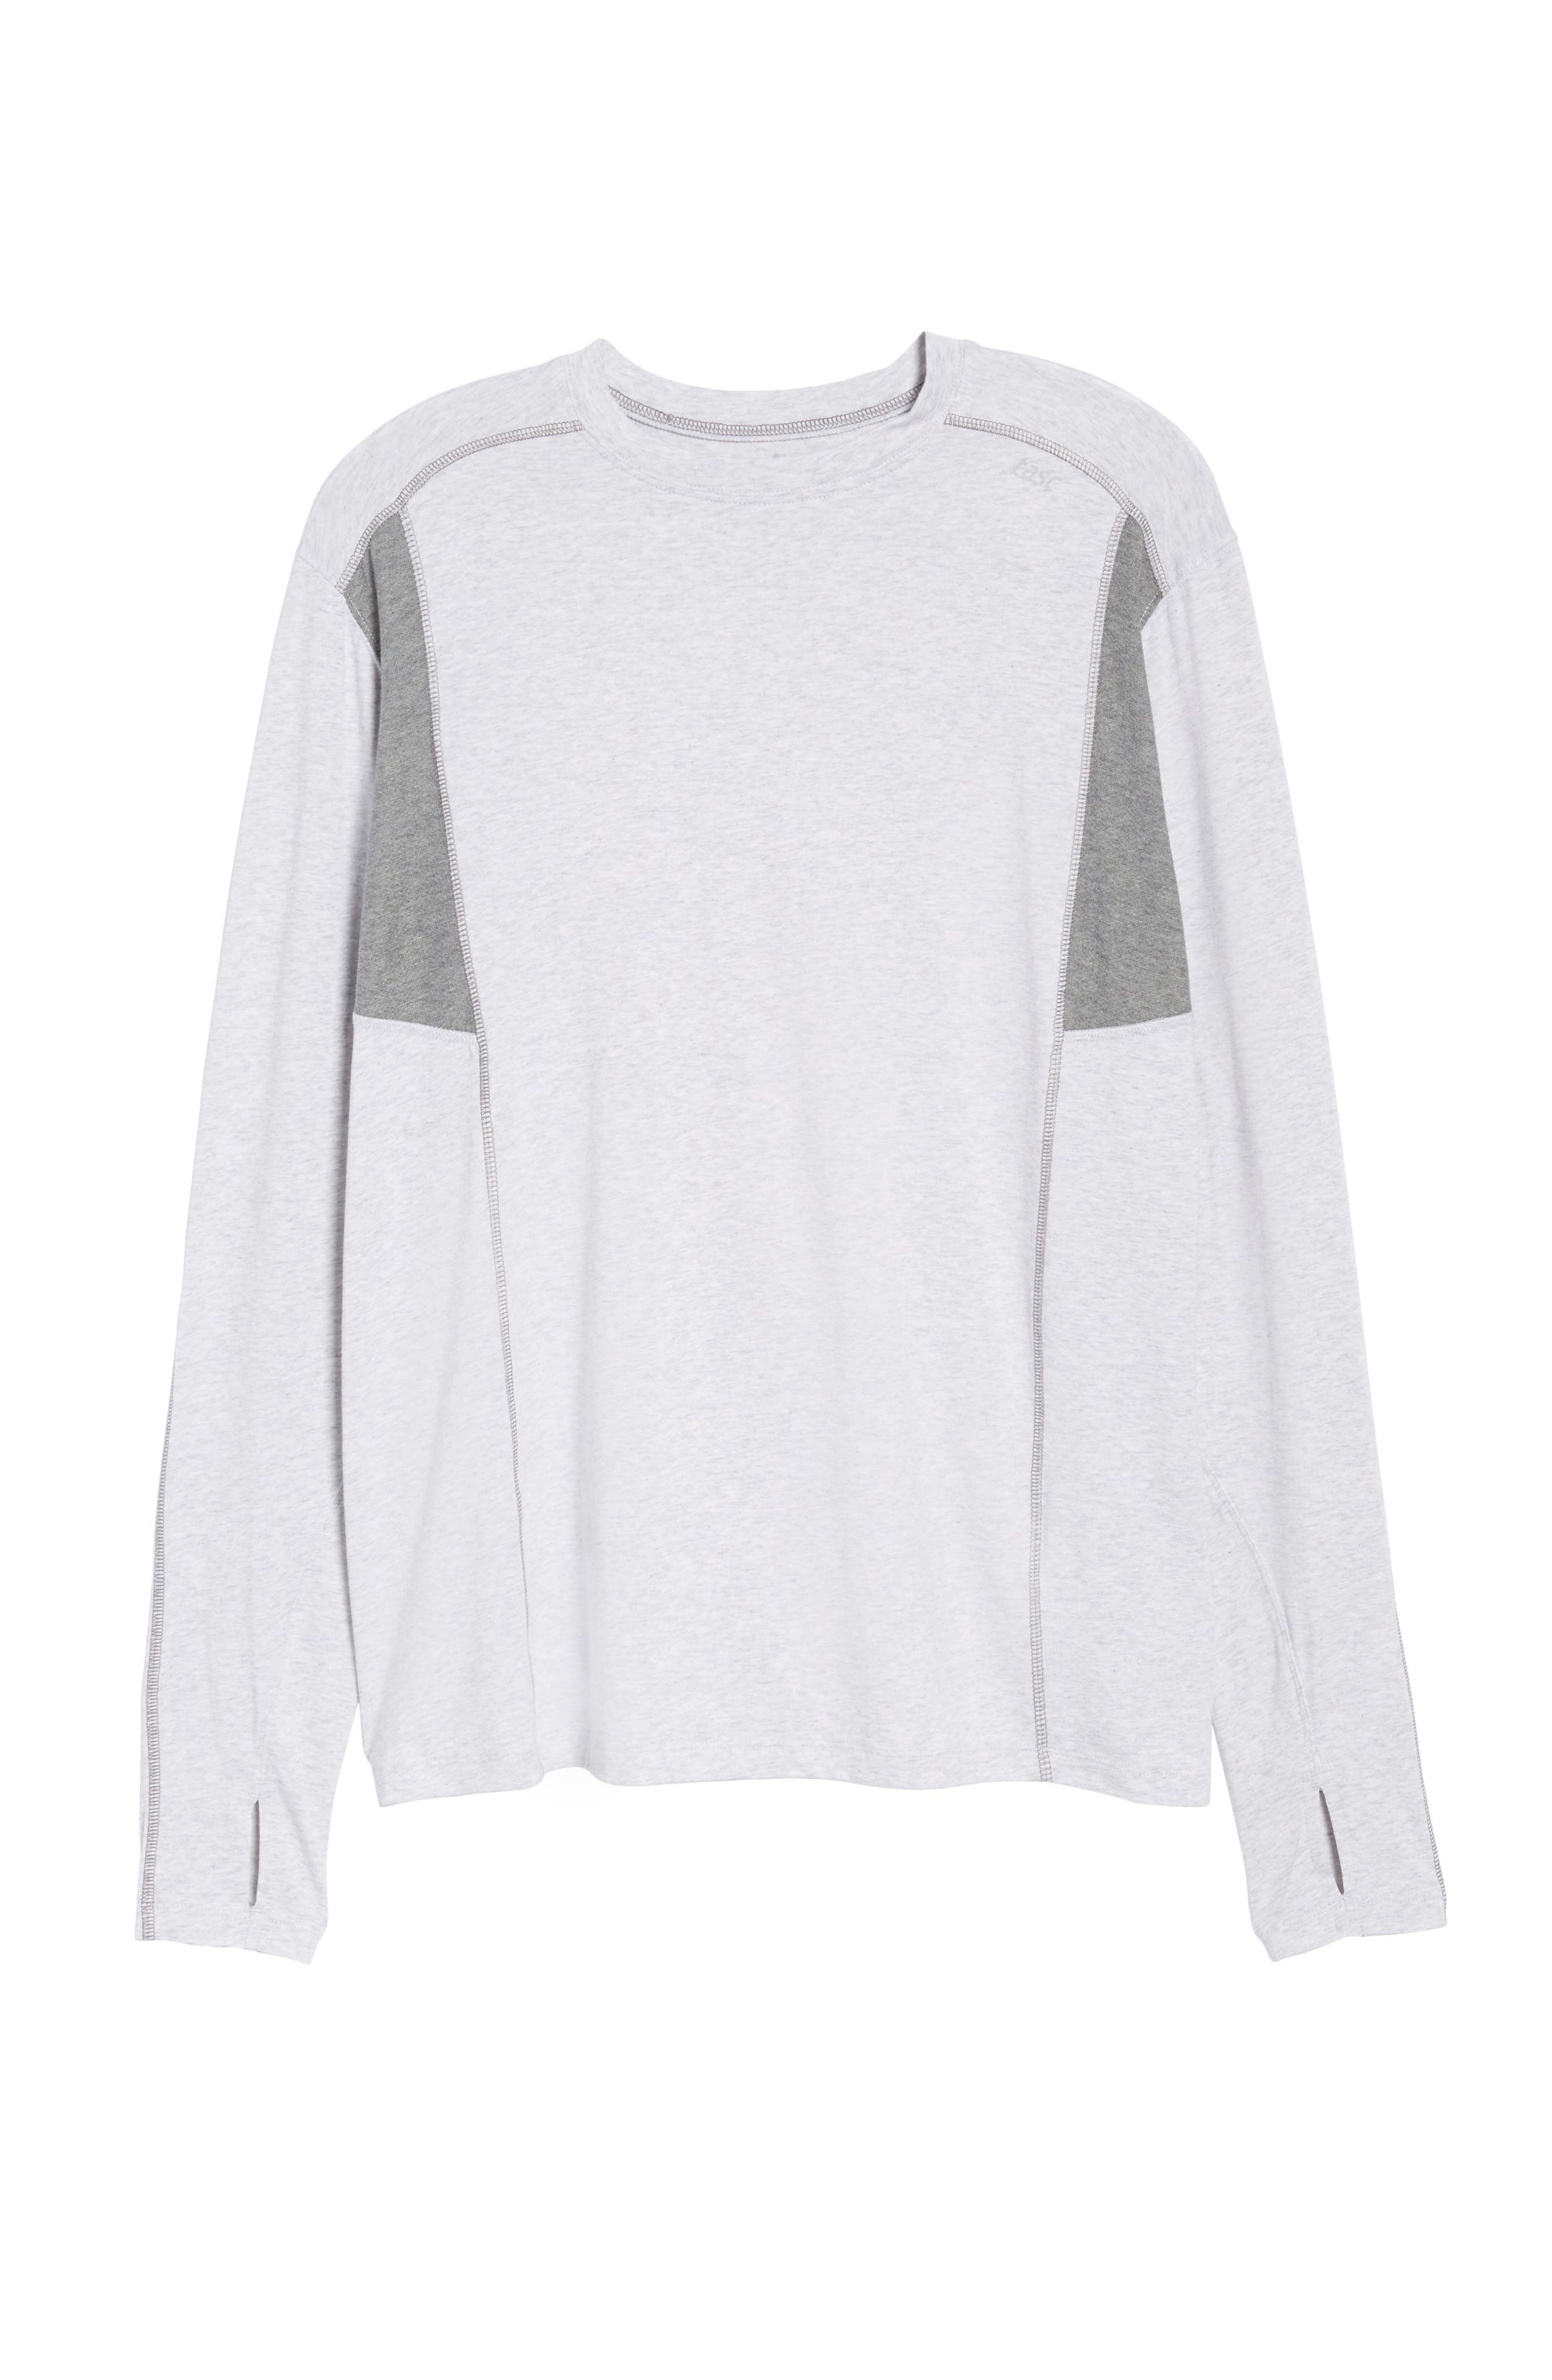 Charge Sweatshirt,                             Alternate thumbnail 6, color,                             Light Heather Gray